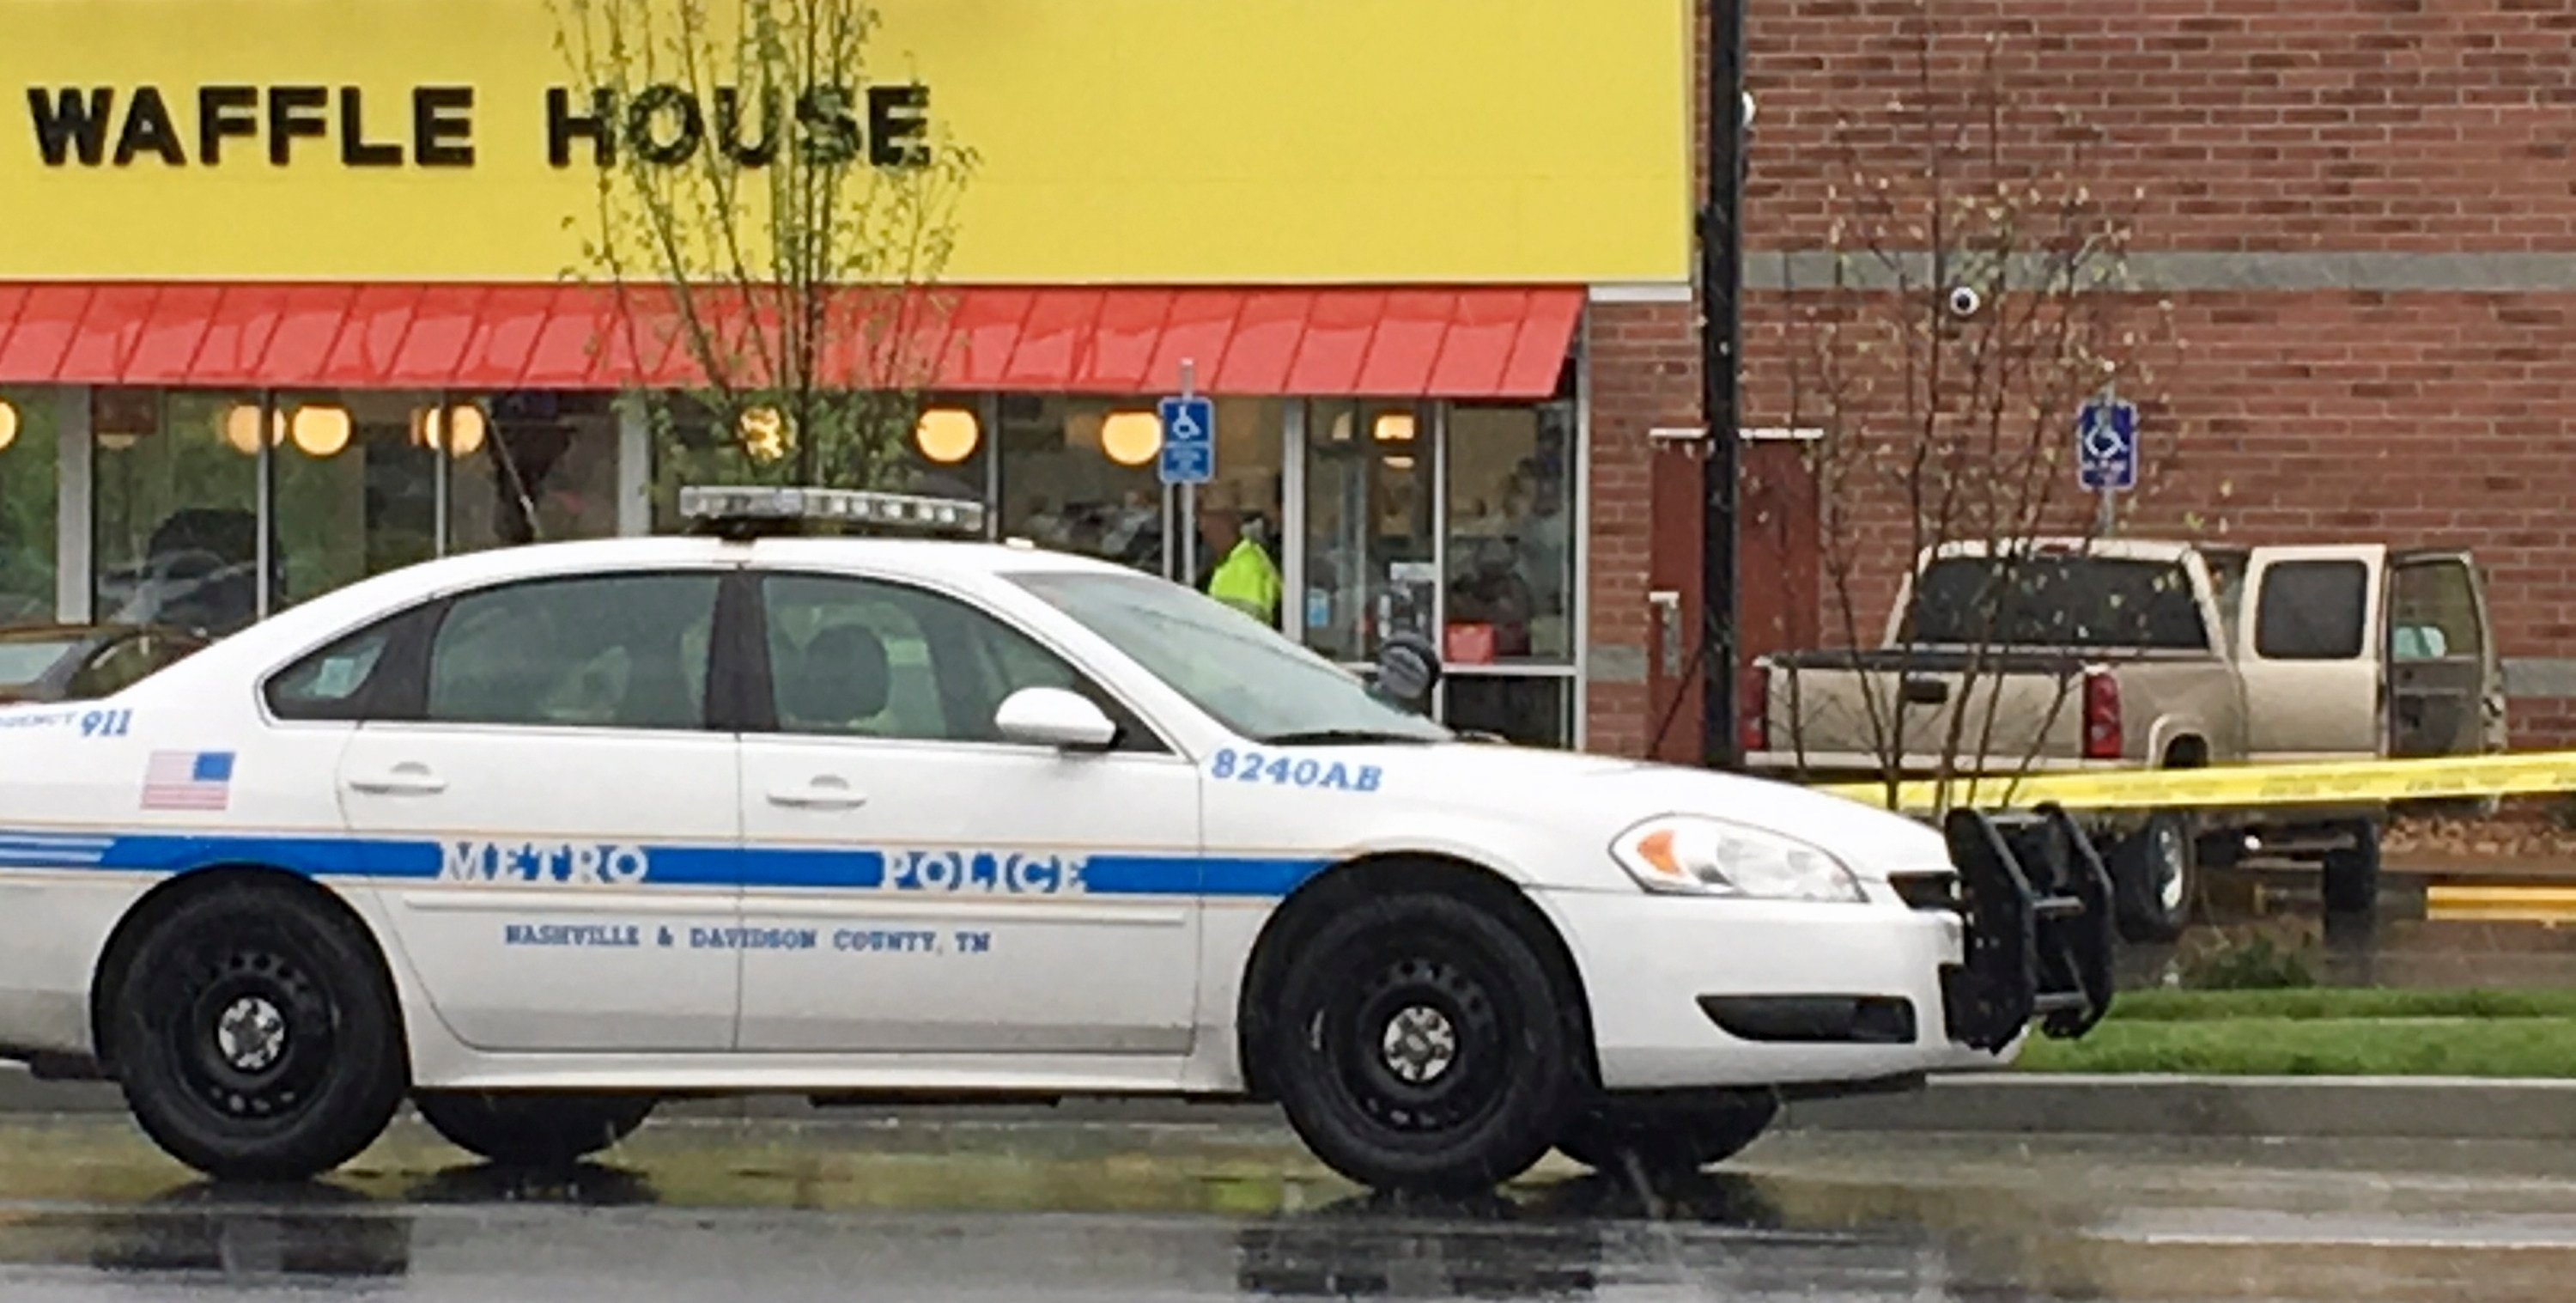 A police vehicle sits outside a Waffle House restaurant in Nashville, Tenn., Sunday, April 22, 2018. (AP Photo/Sheila Burke)